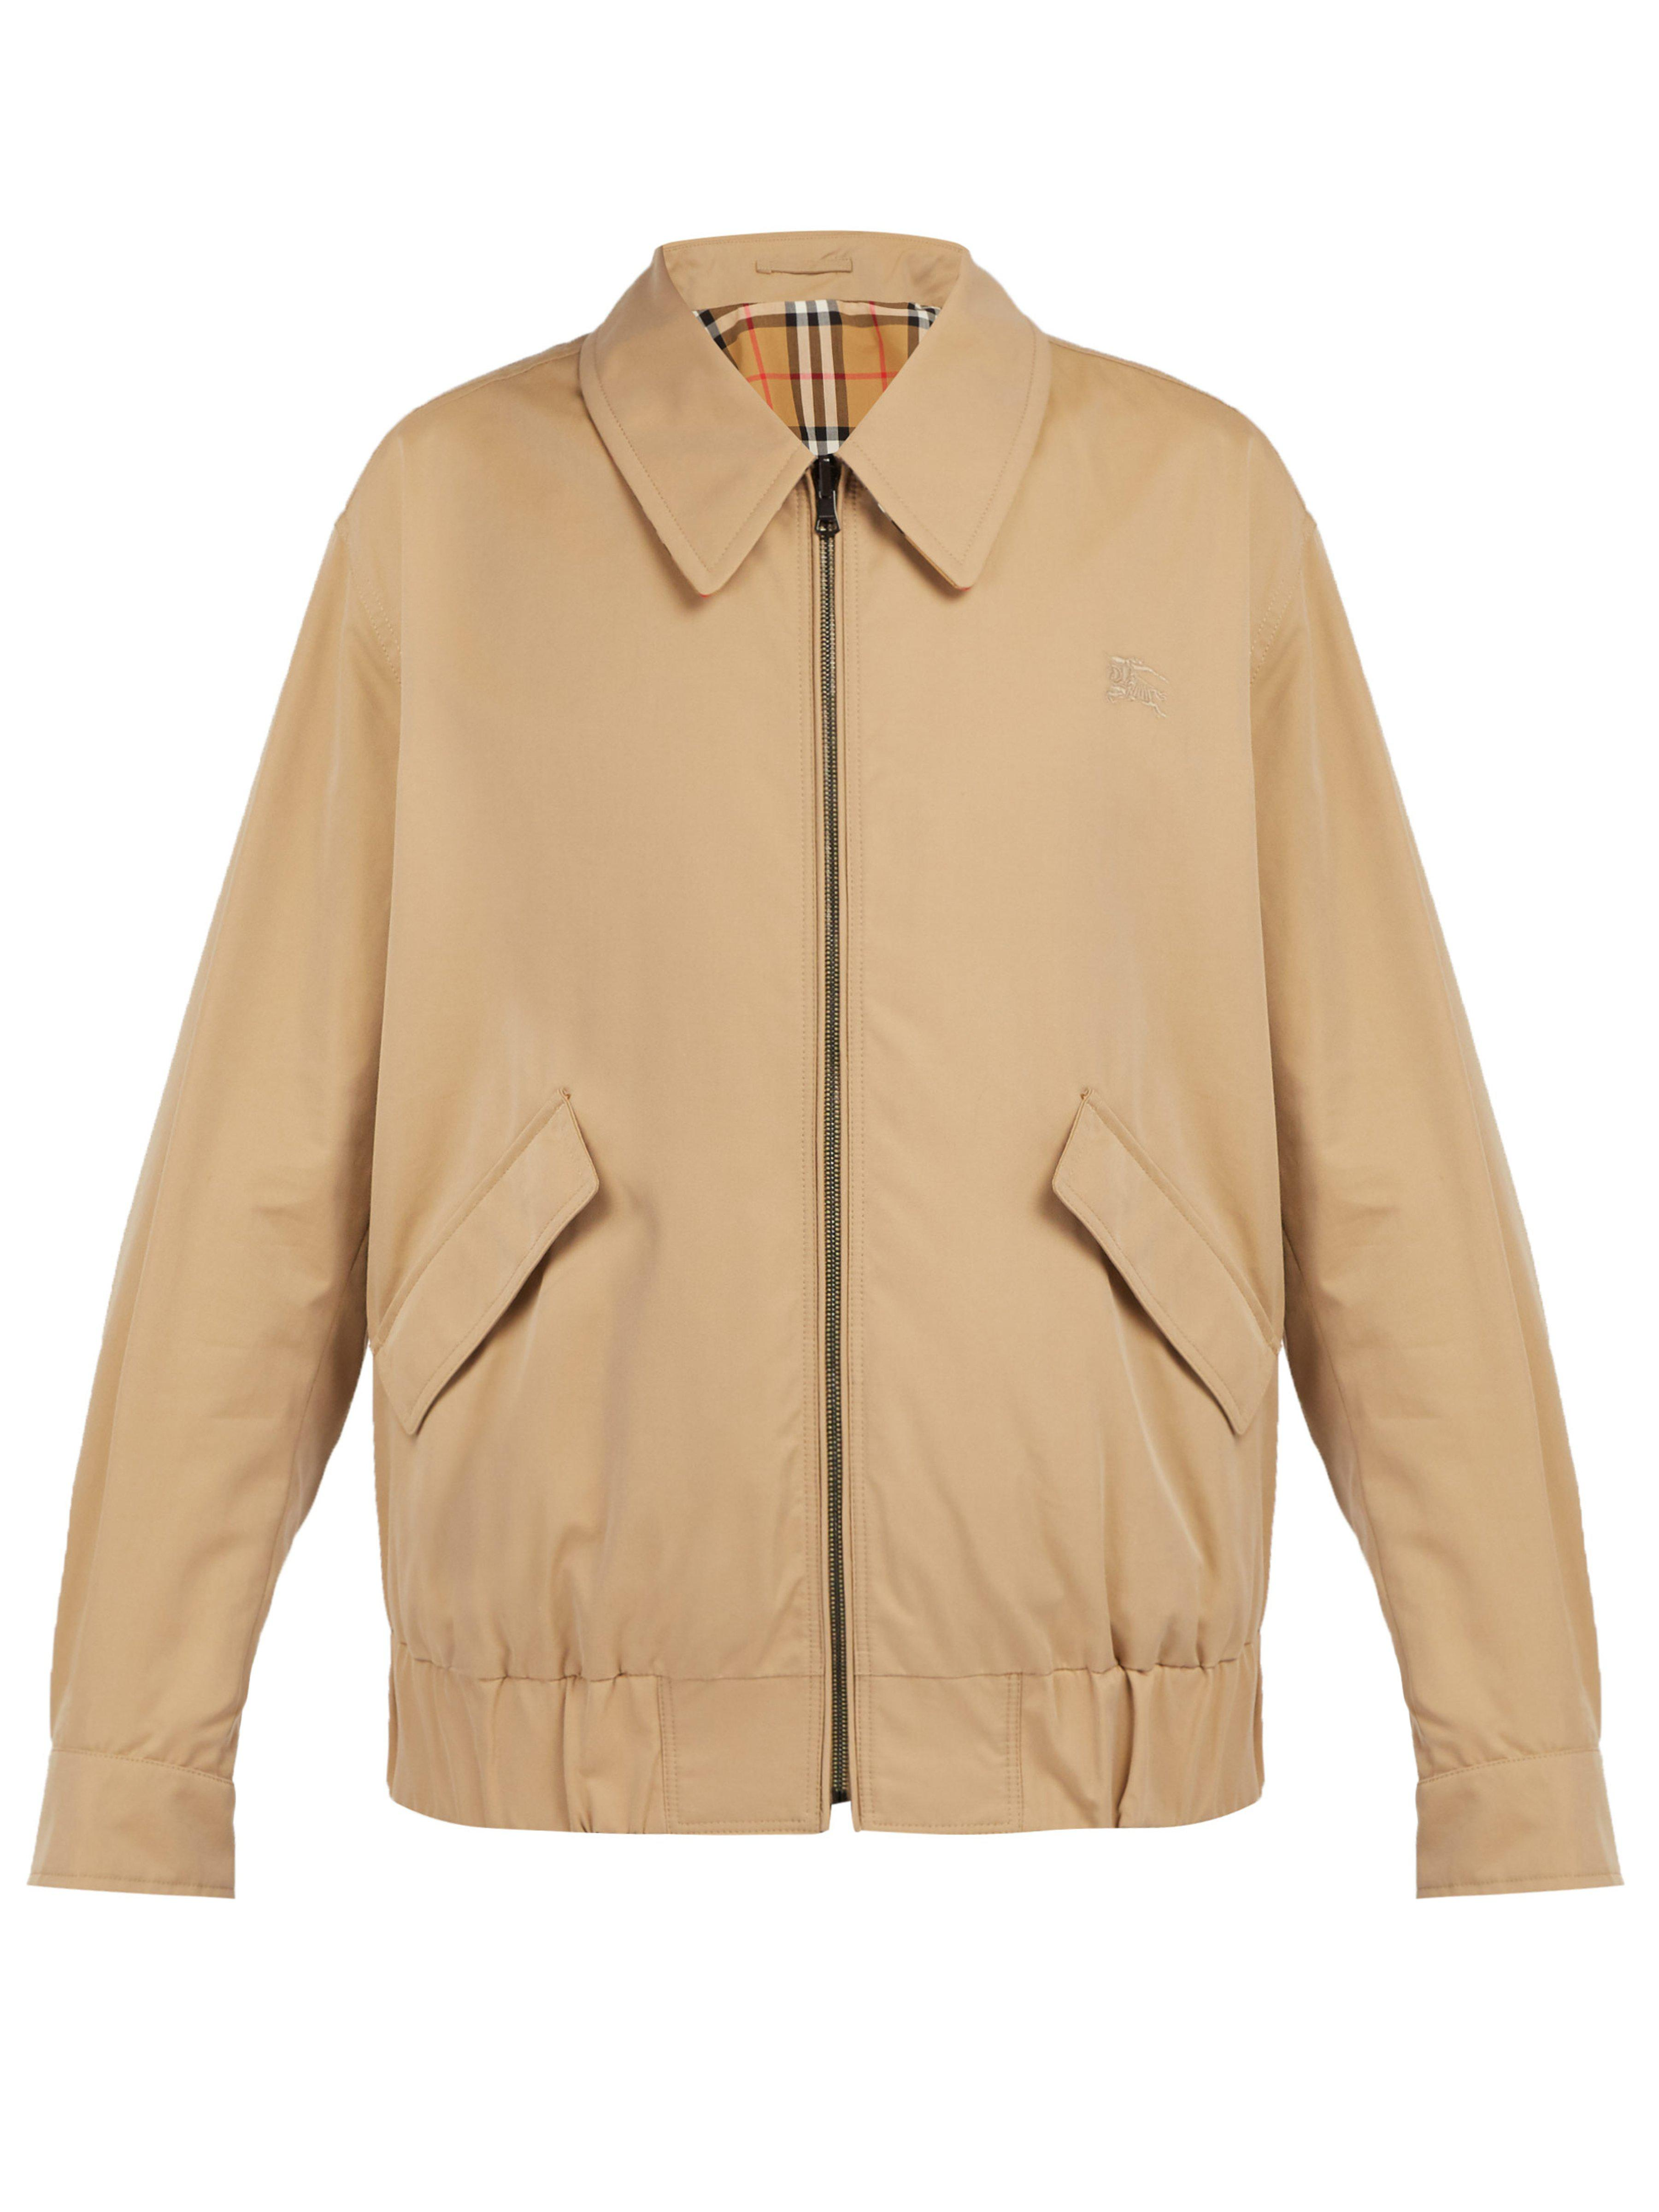 98c0f8a581 Burberry Harrington Cotton Gabardine Jacket in Natural for Men - Lyst